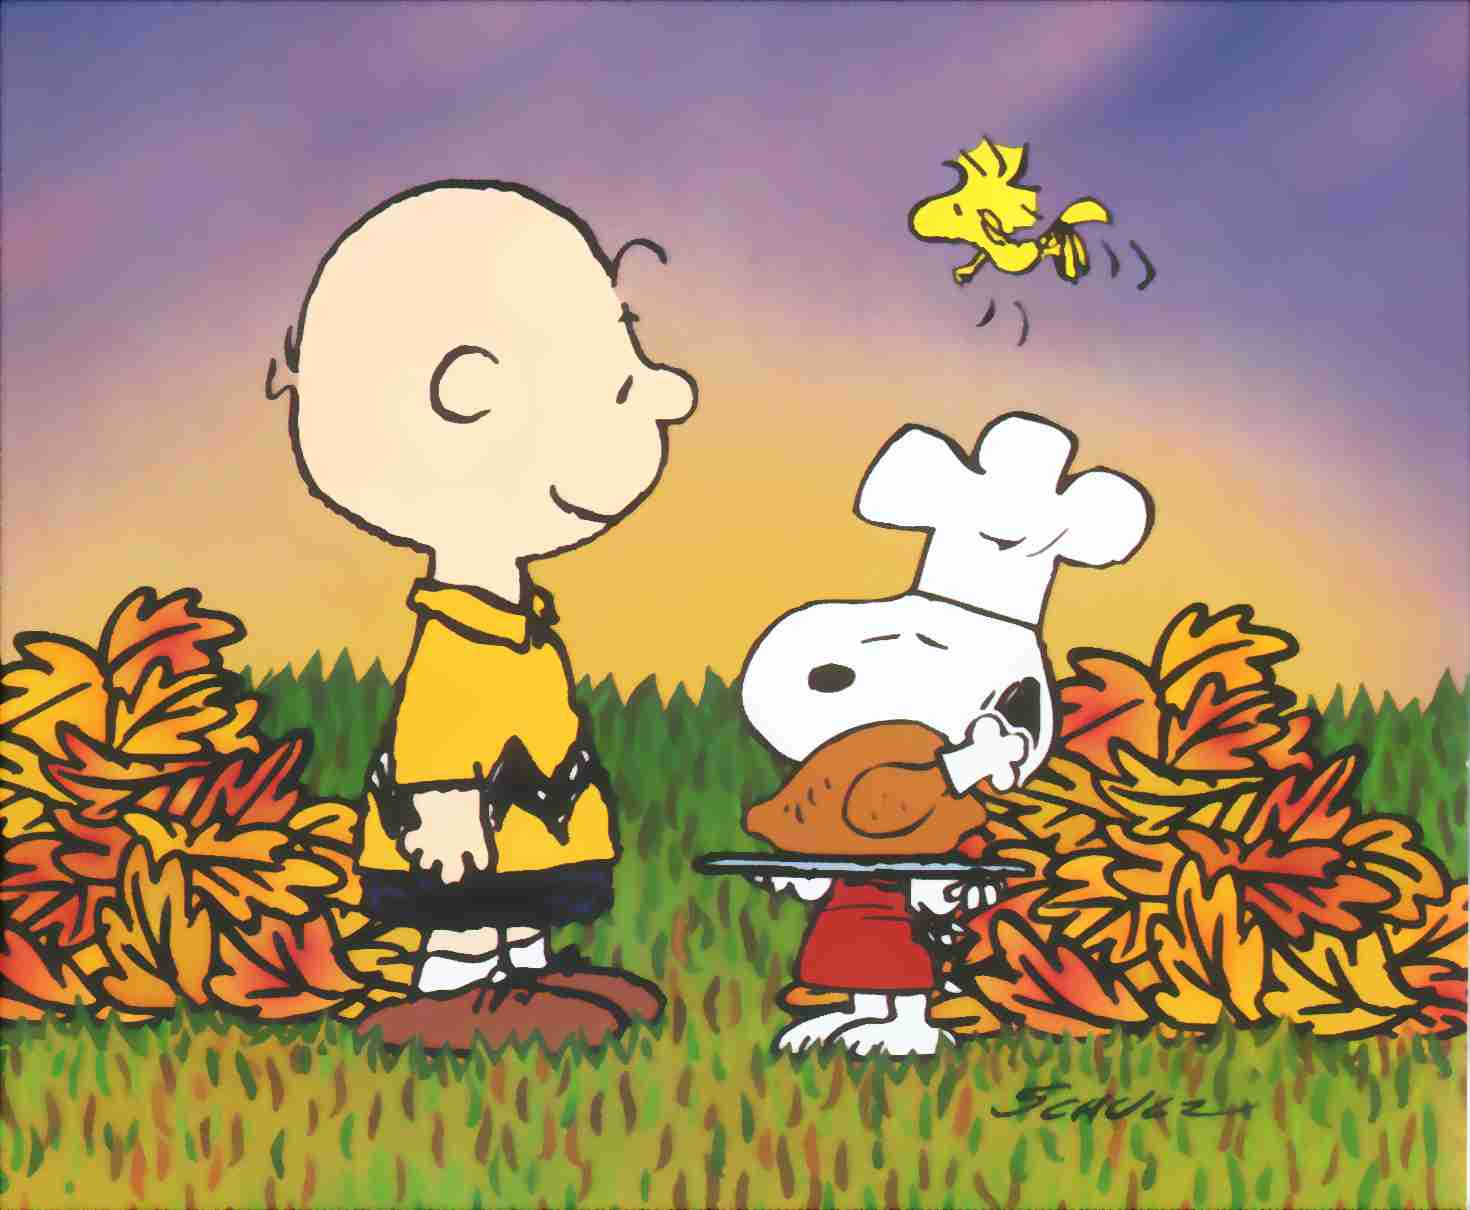 download animated thanksgiving wallpaper [1470x1210] for your 1470x1210